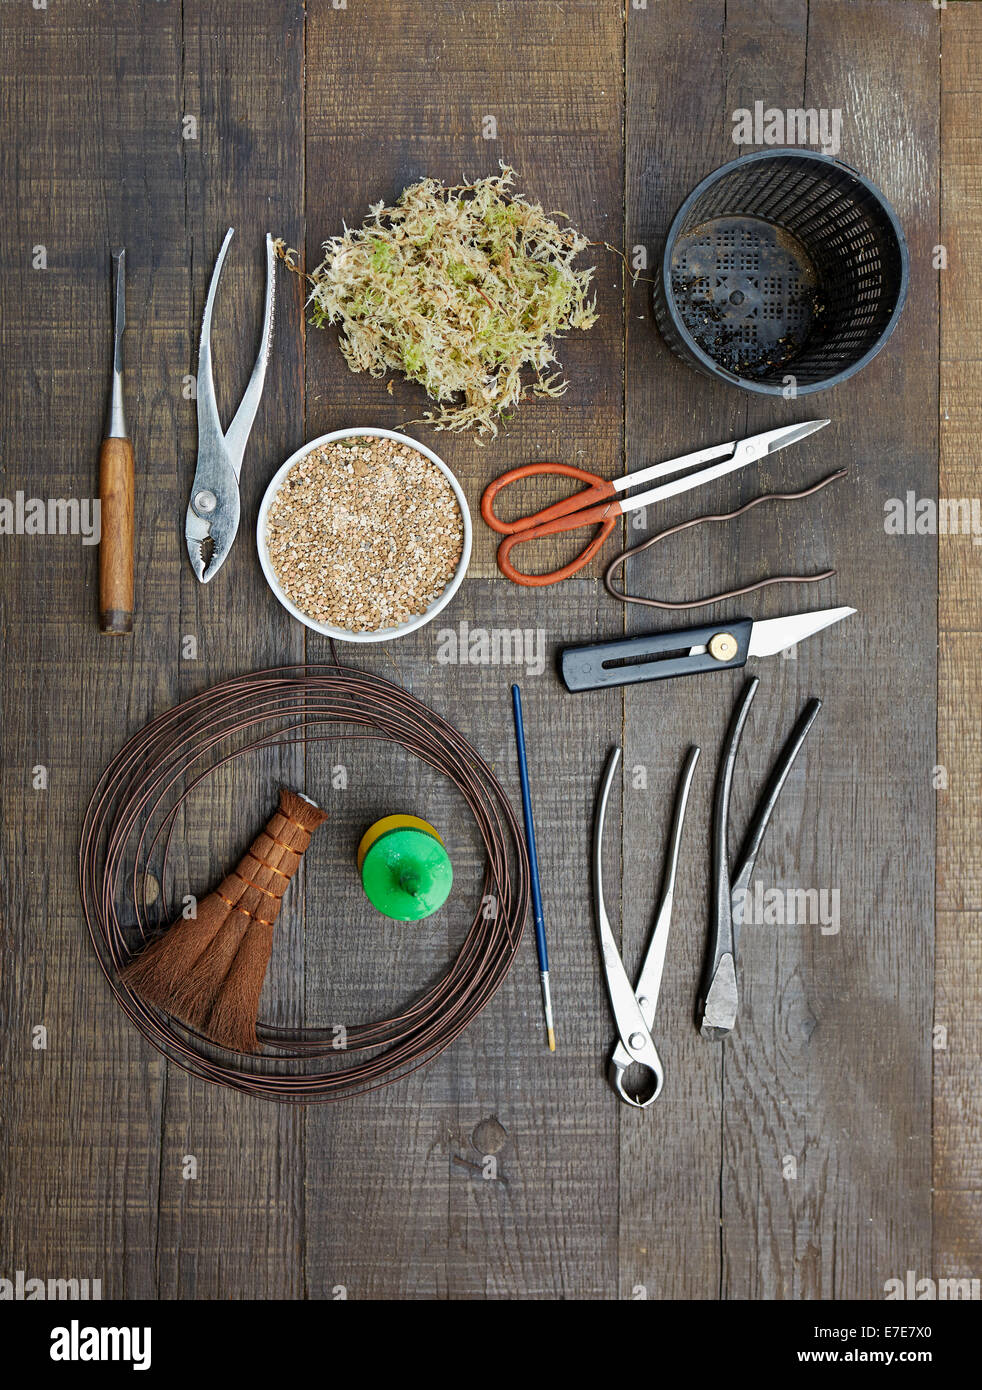 Bonsai Tools Pliers Wire Concave Cutters Branch Cutters Knife Stock Photo Alamy